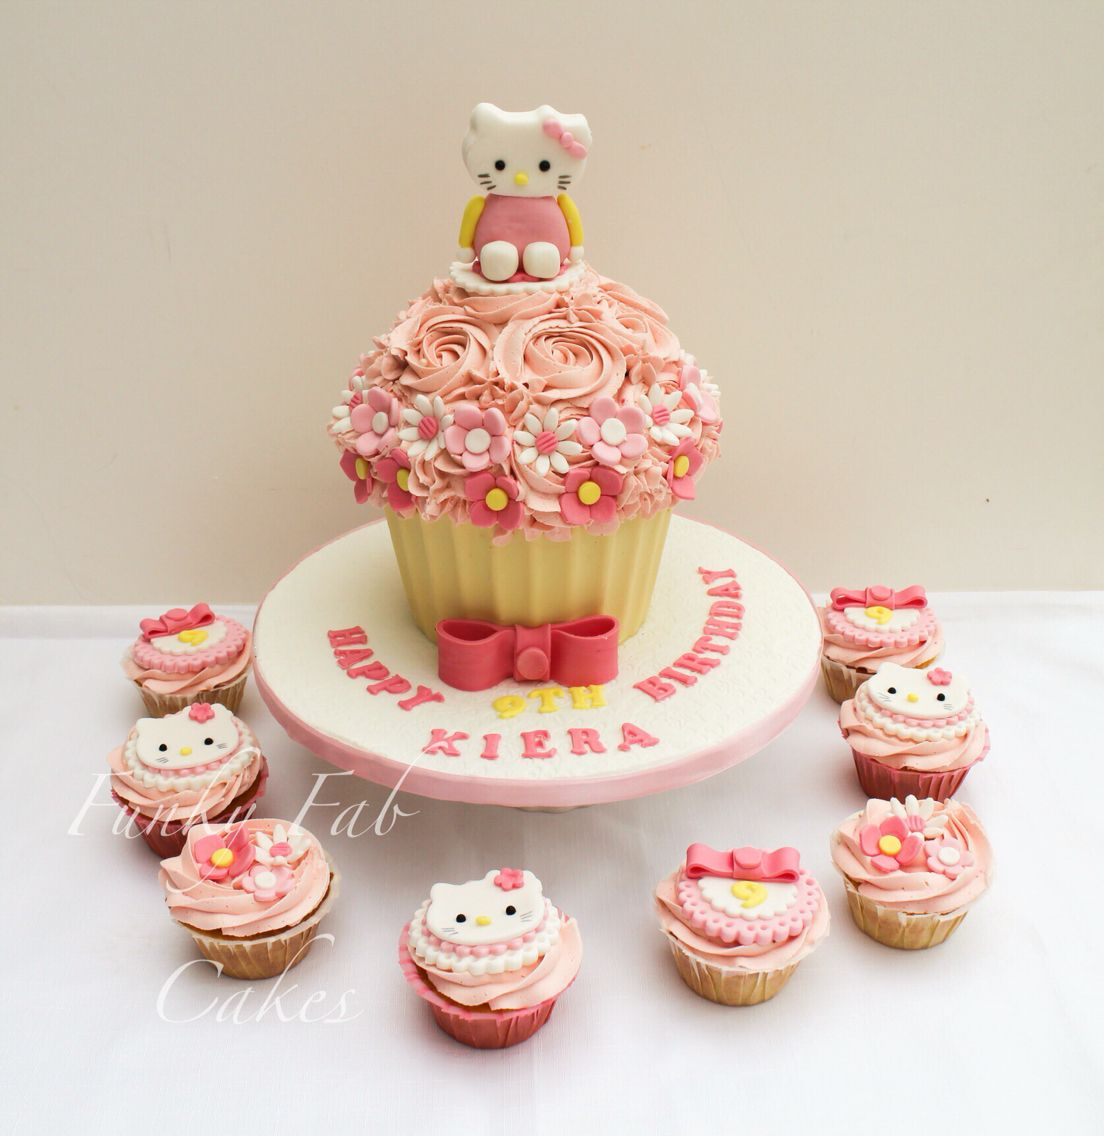 Hello Kitty Giant Cupcake With Matching Cupcakes